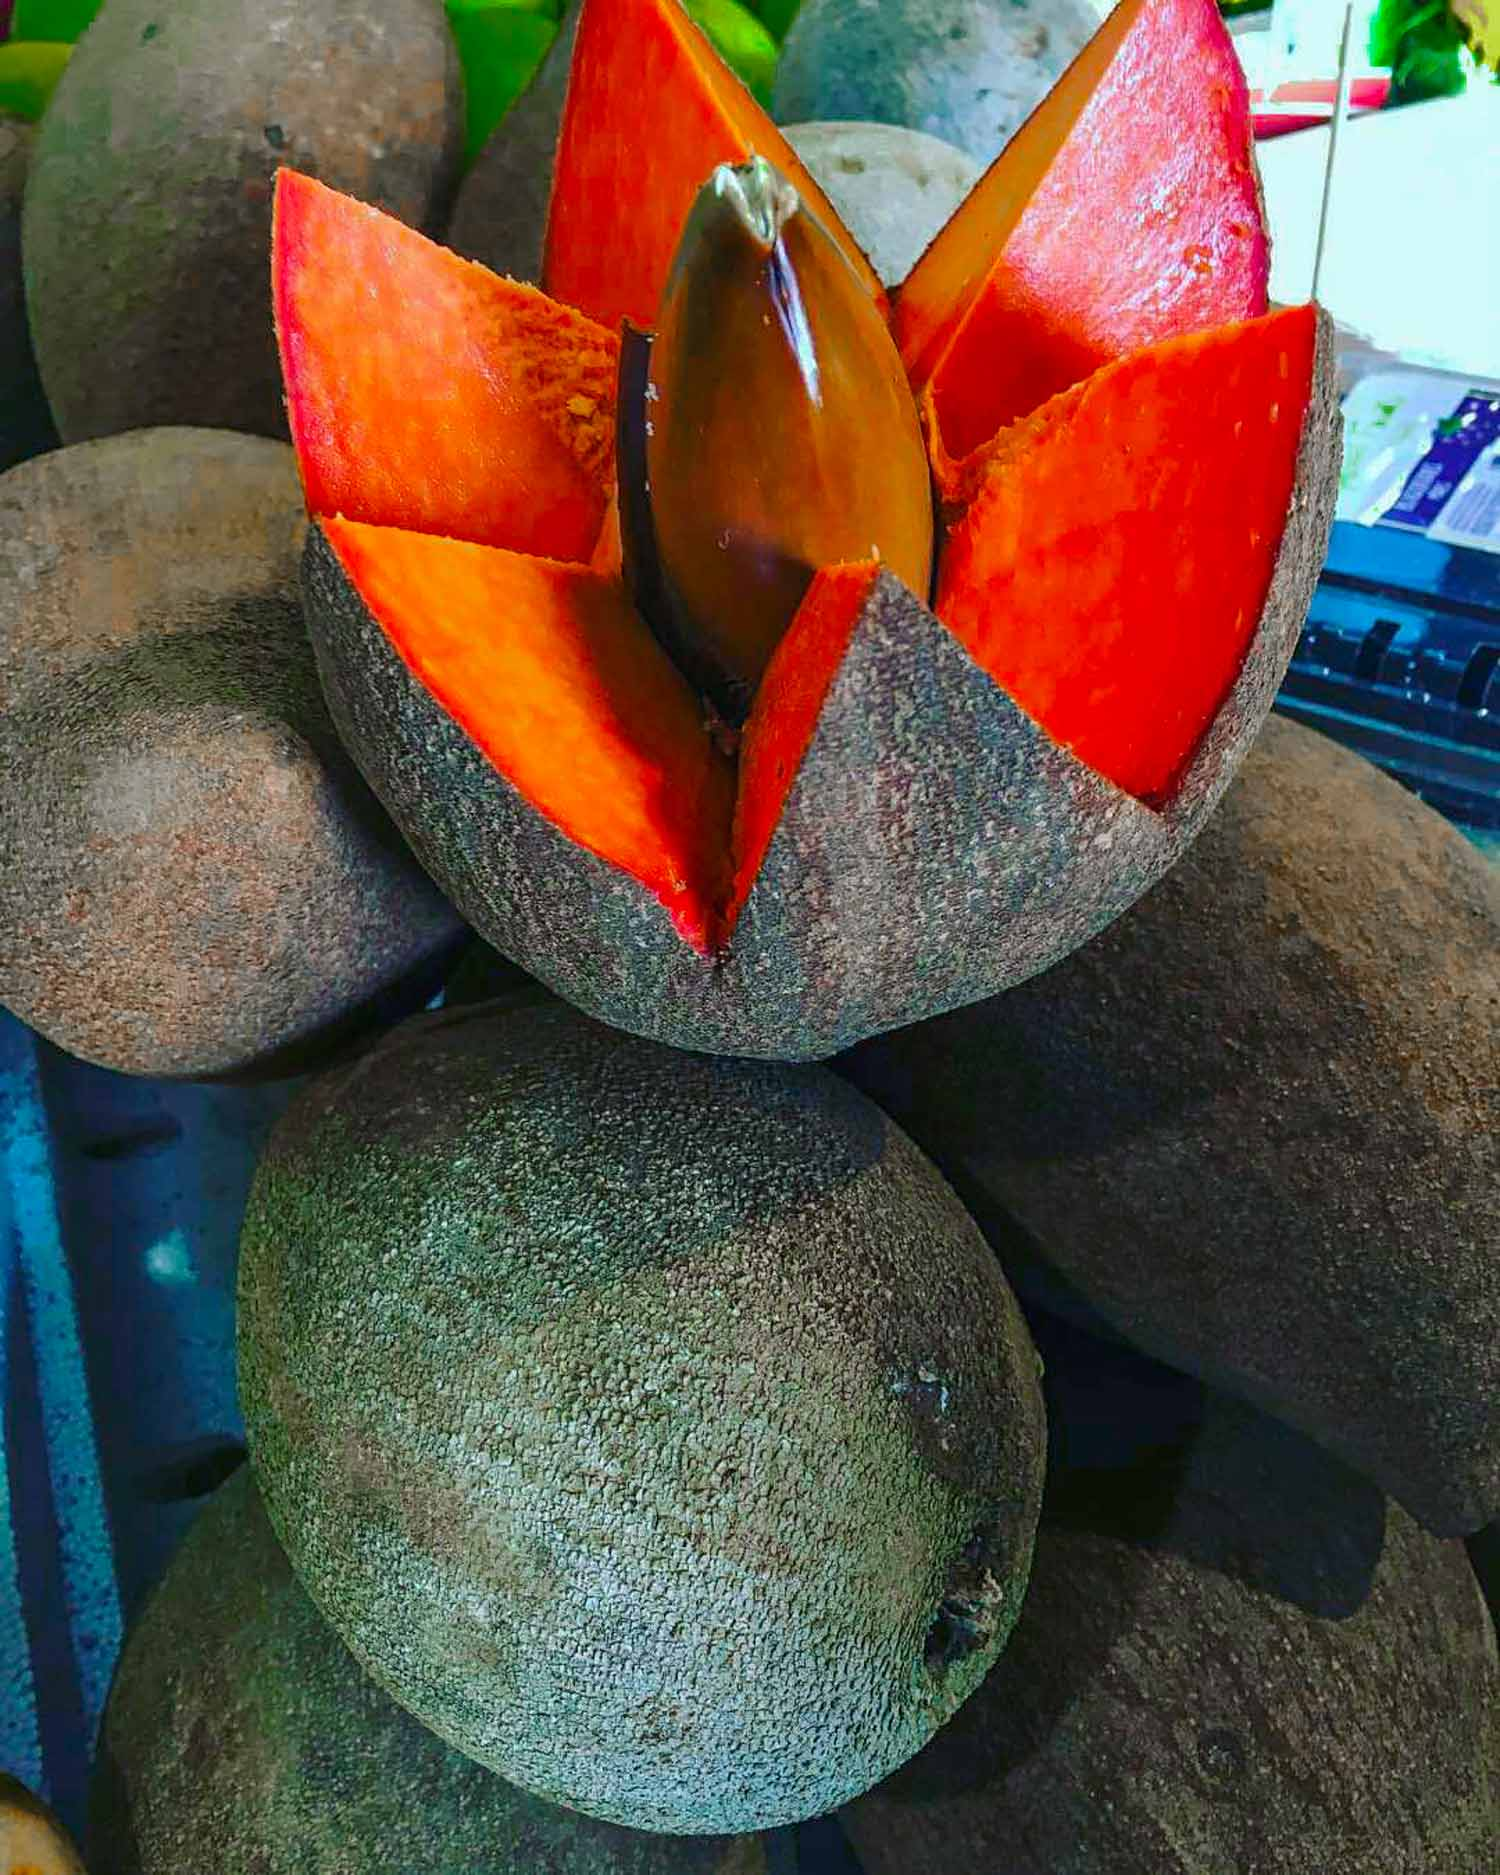 Mamey sapote is one of the exotic fruits around the world, found originally in Malaysia but now common in Cuba and the Caribbean.